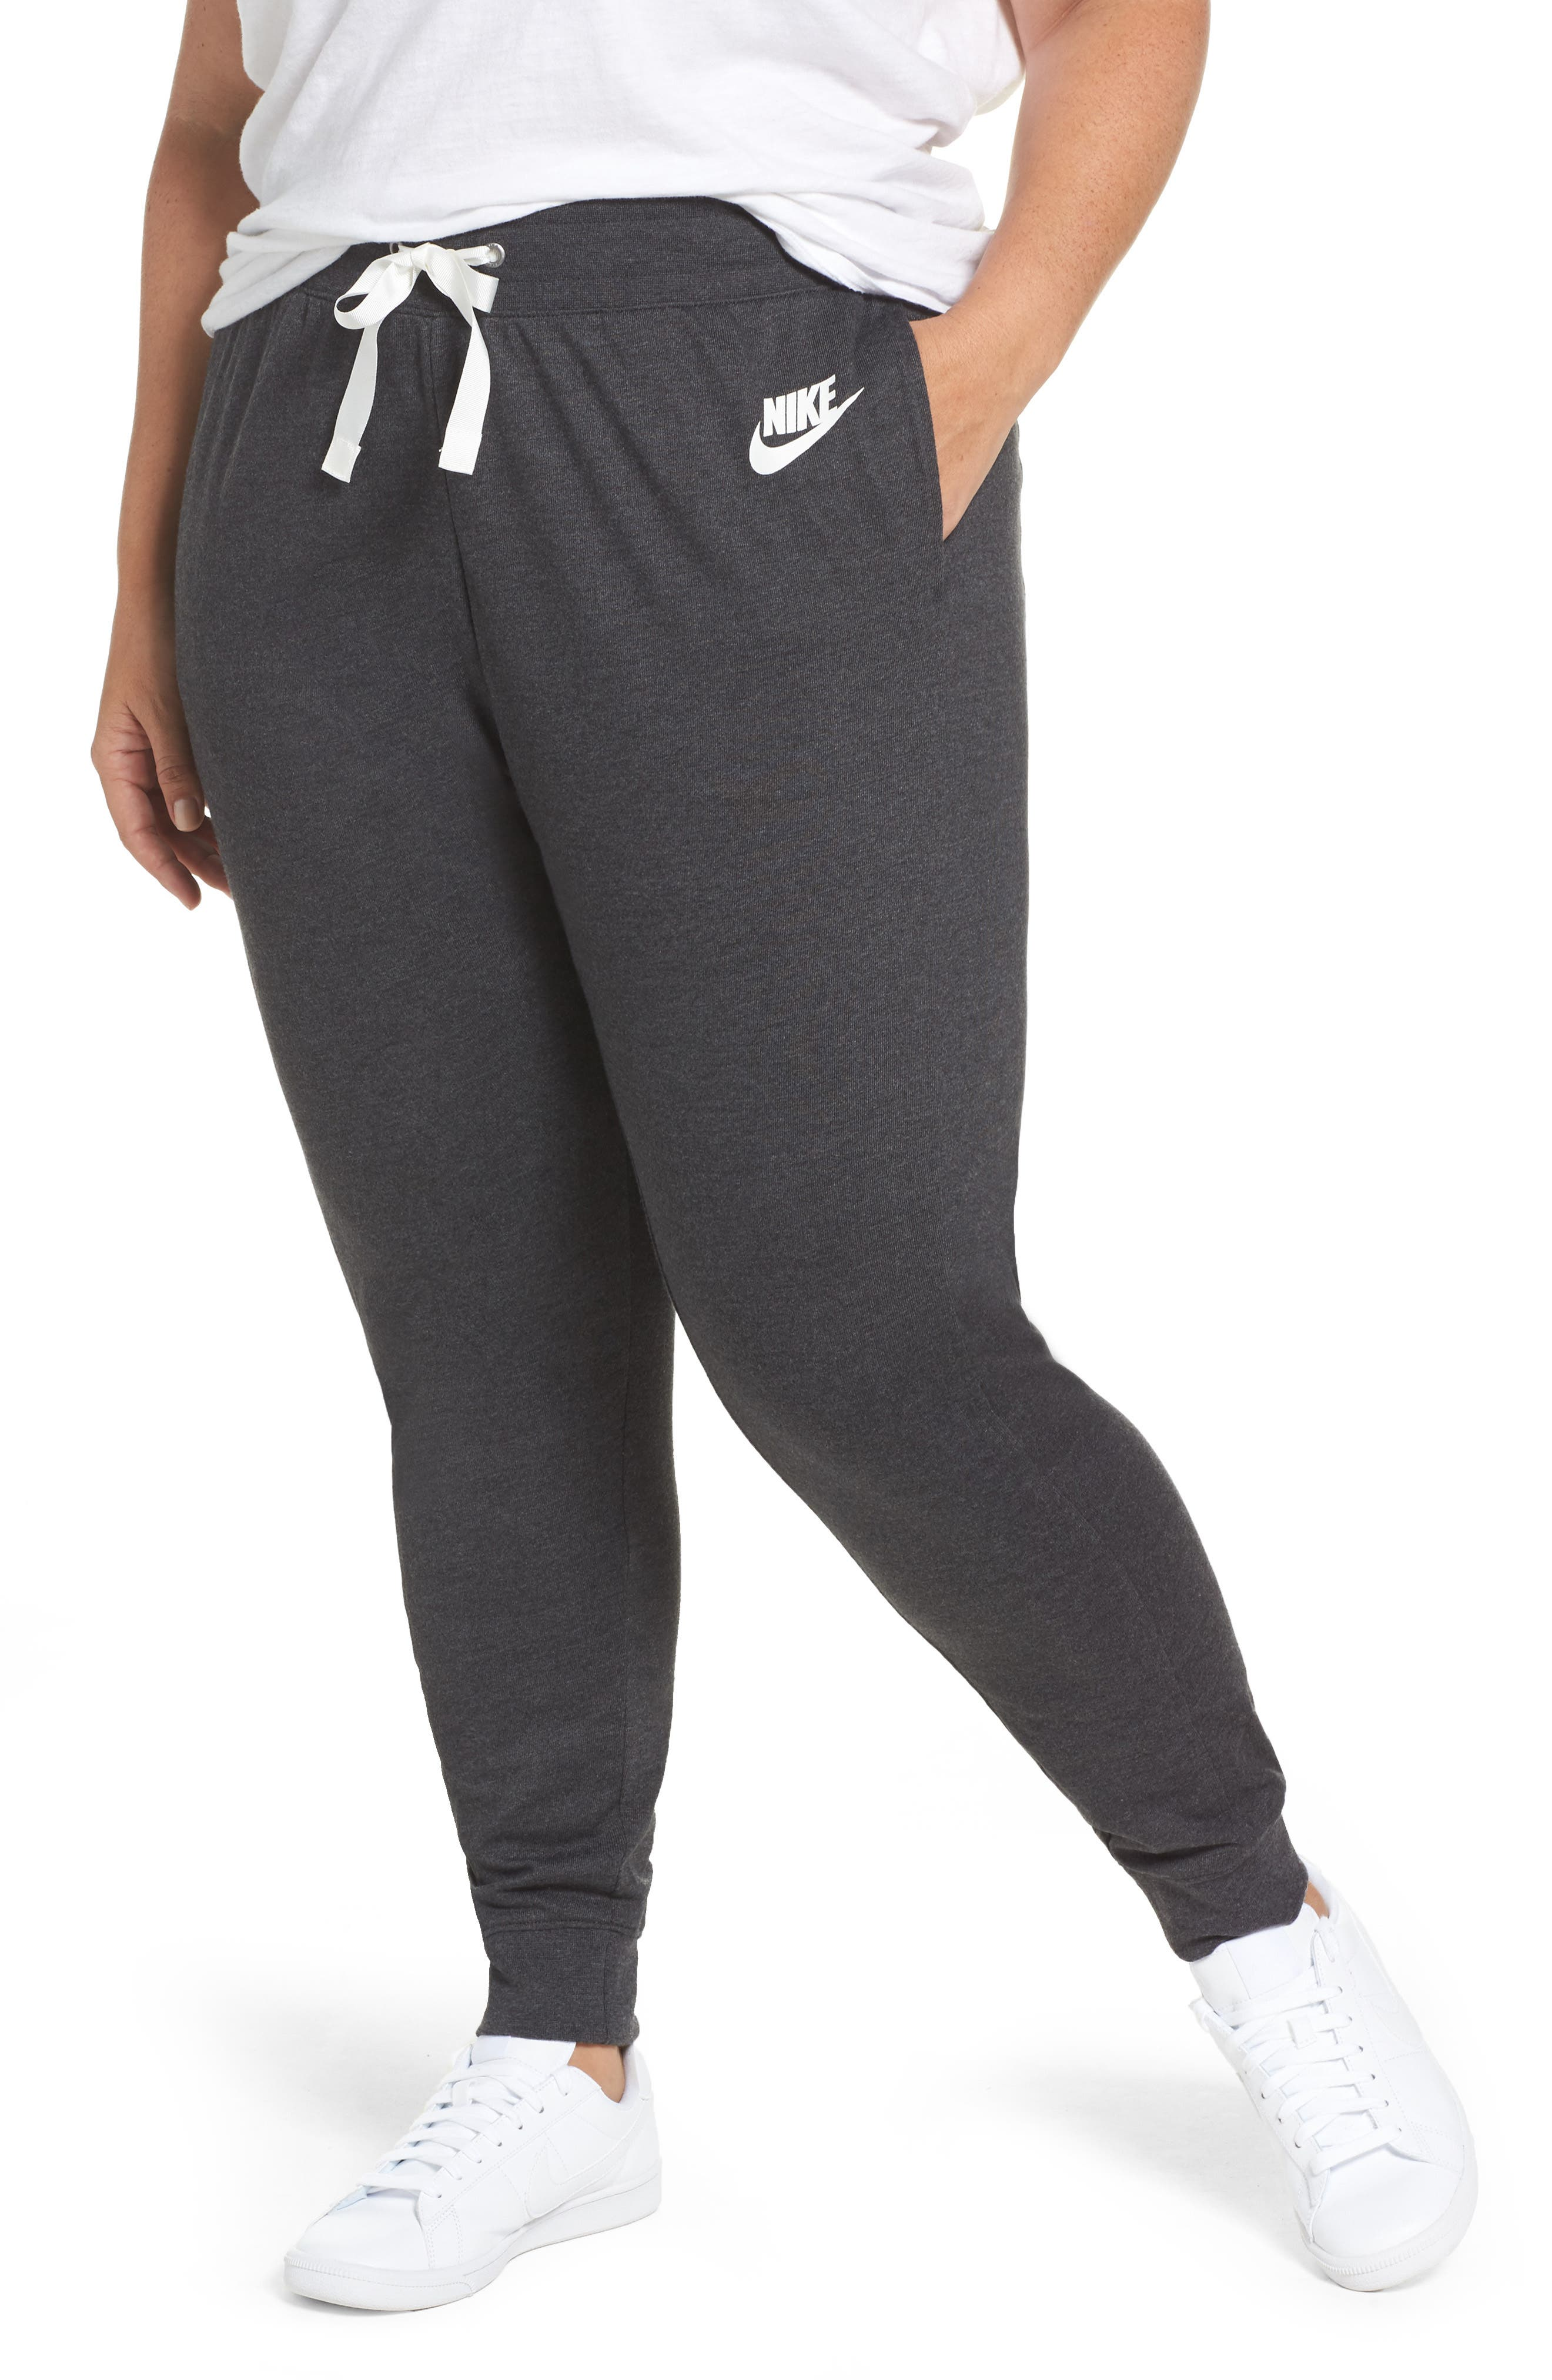 Sportswear Gym Classic Pants,                             Main thumbnail 1, color,                             Black Heather/ Sail